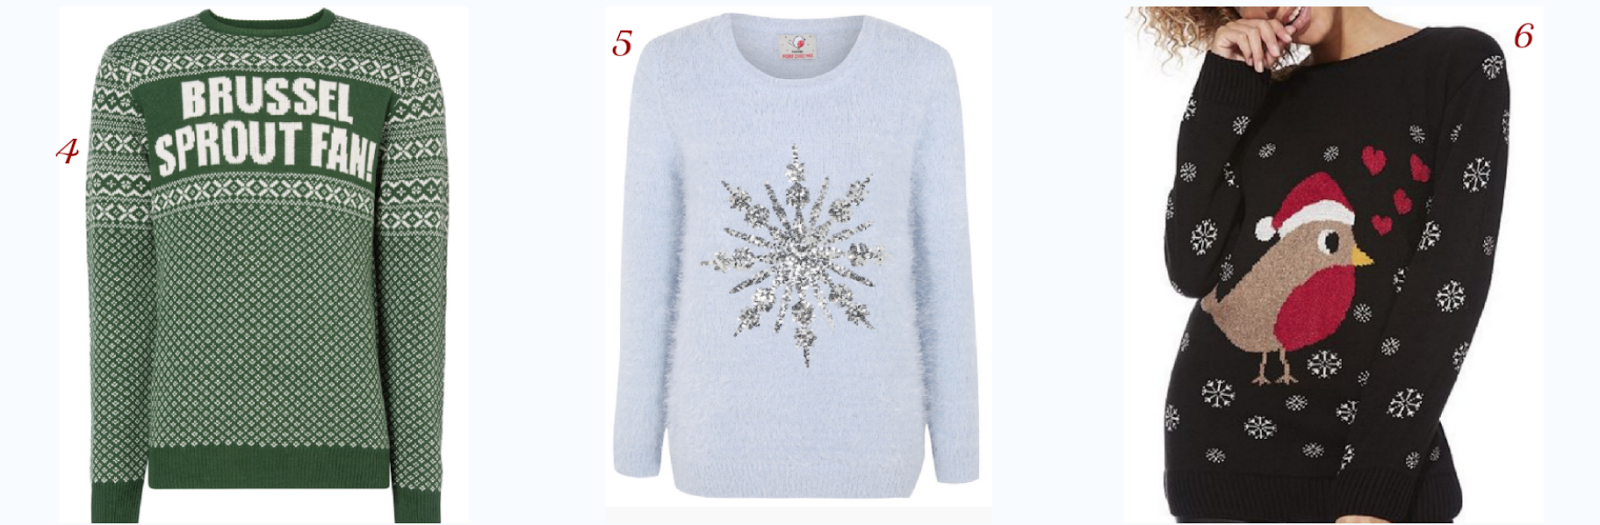 Christmas-jumper-edit-ASDA-Tesco-Sainsburys-knit-wear-festive